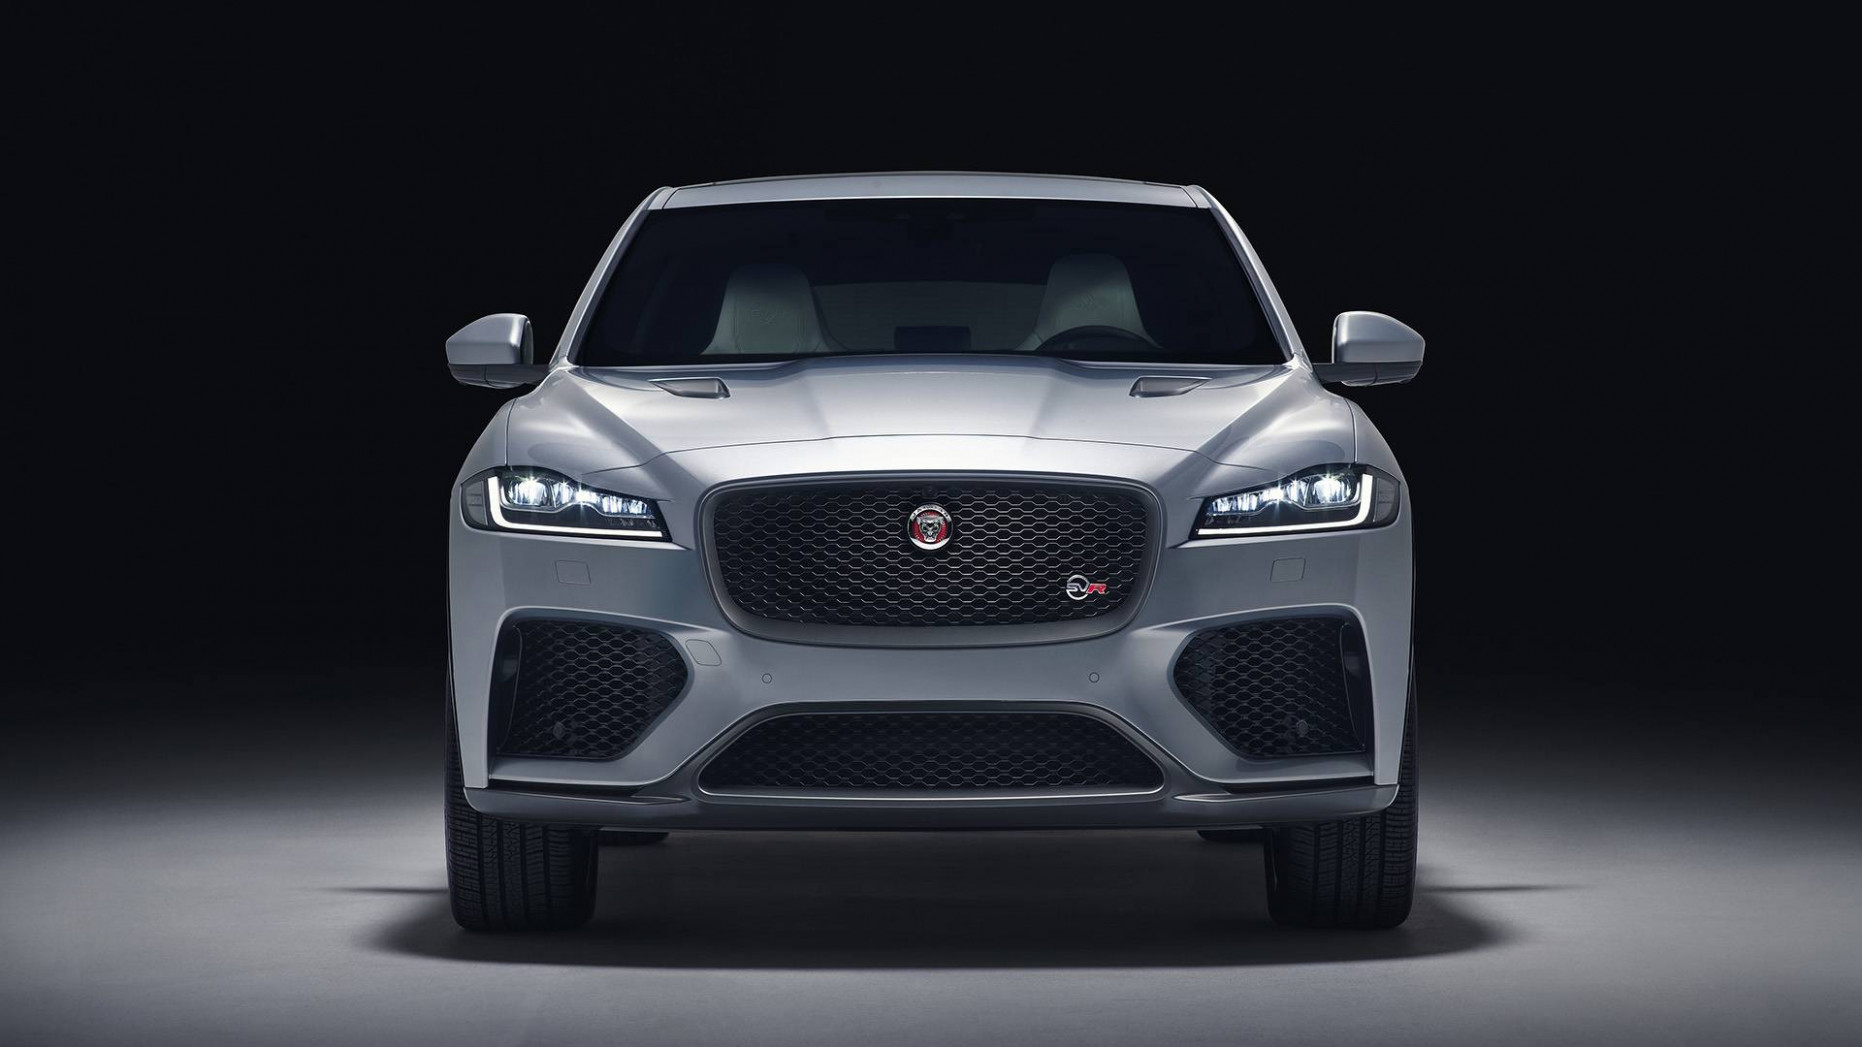 Redesign and Concept Jaguar I Pace 2022 Model